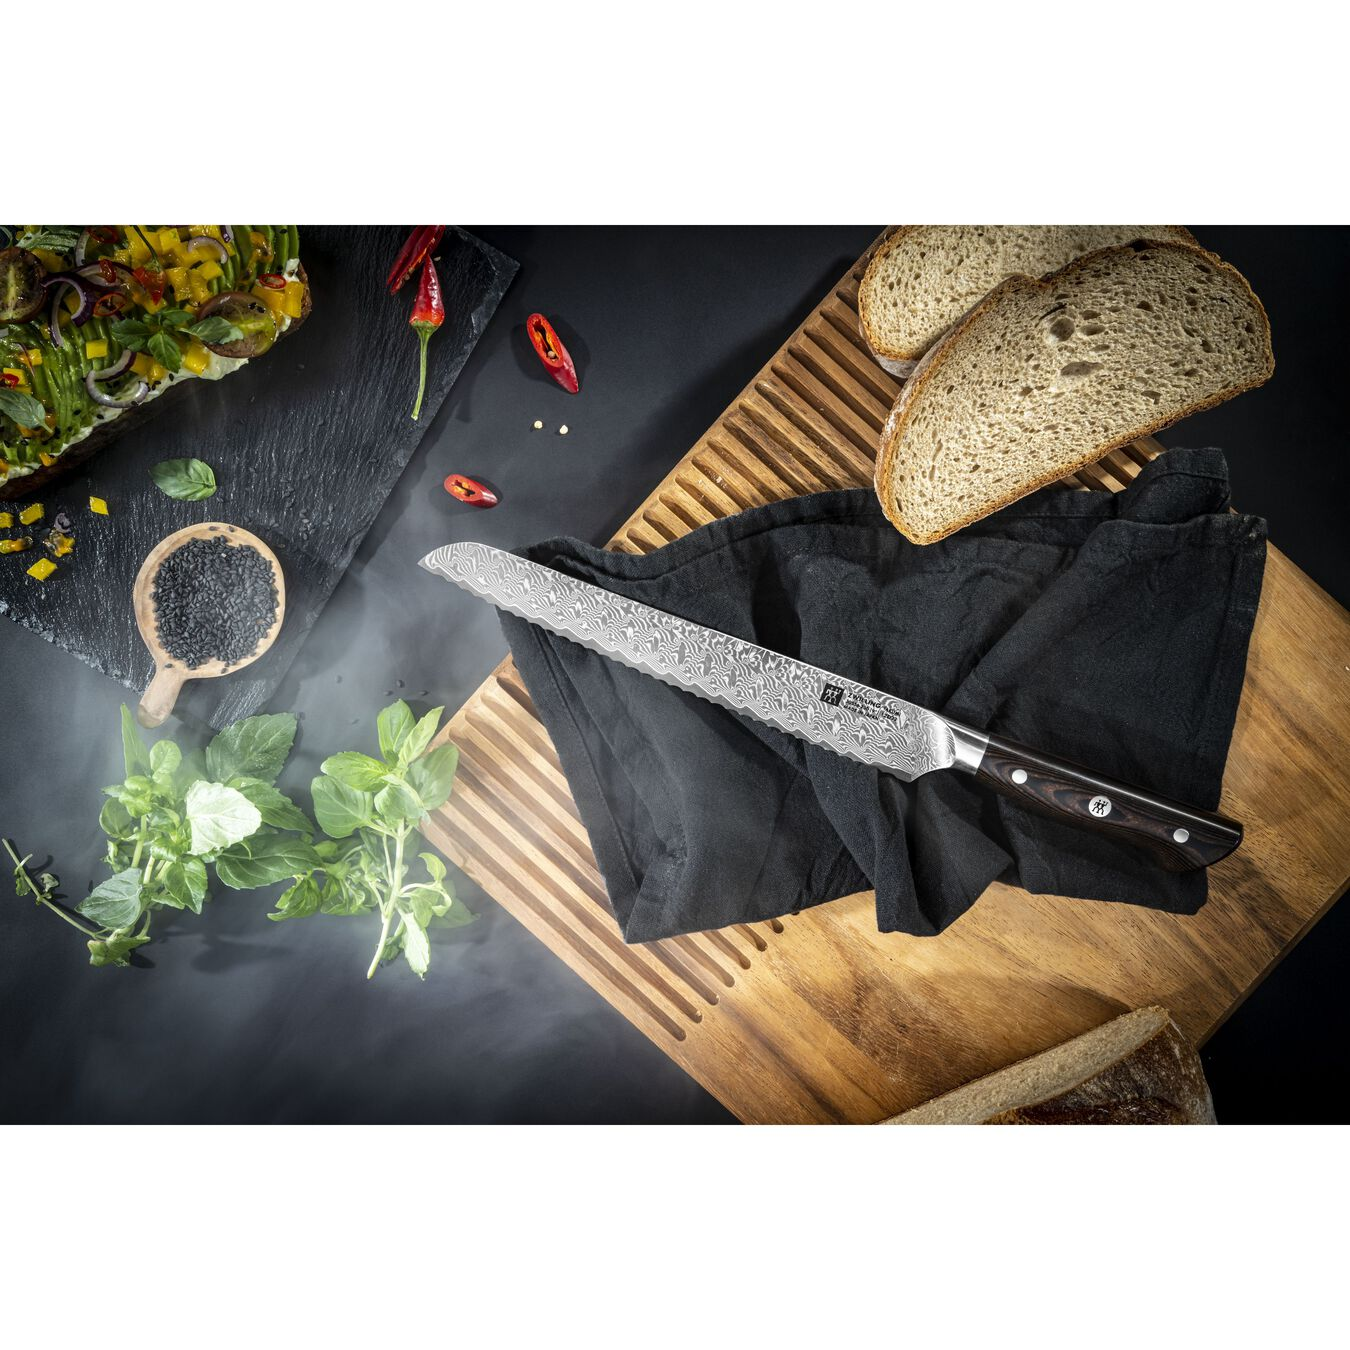 9 inch Bread knife,,large 4